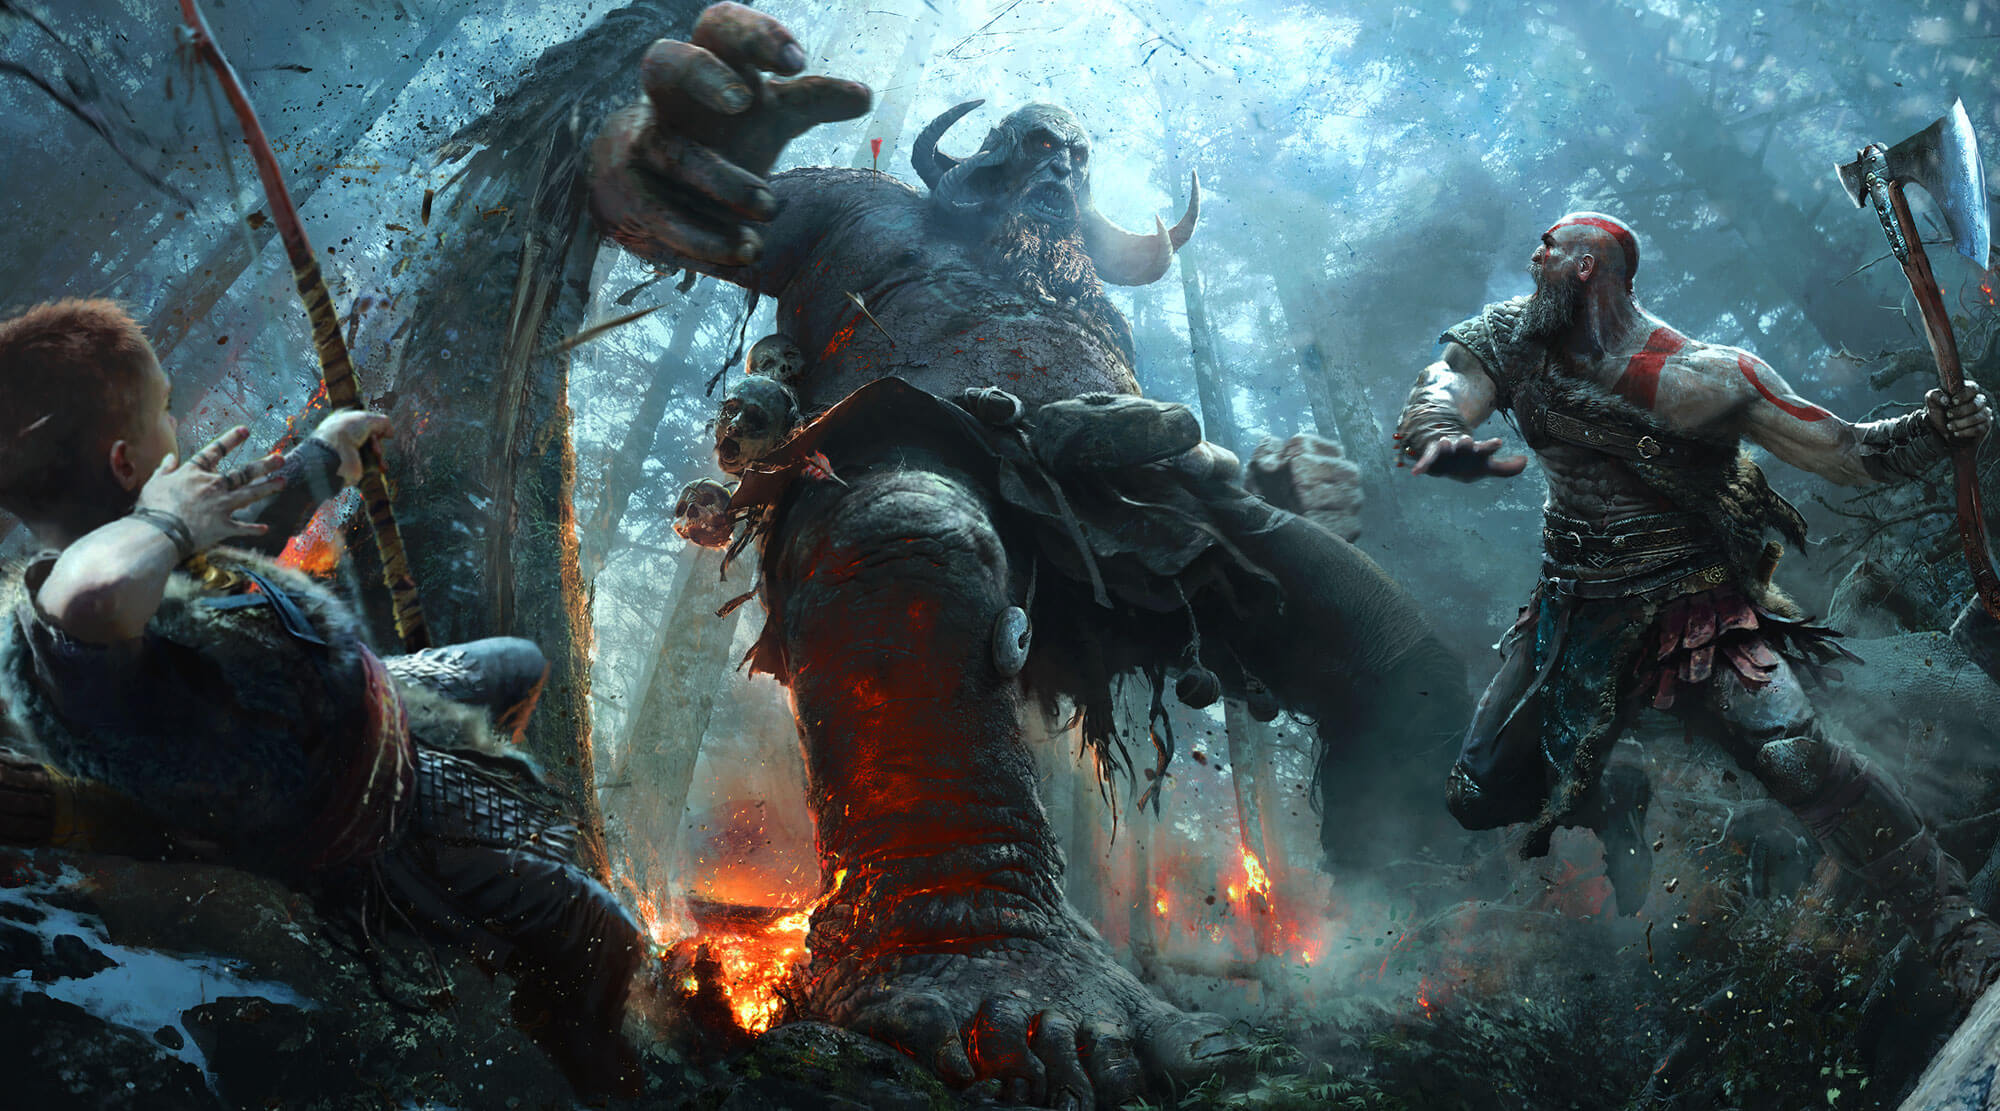 God of War header image